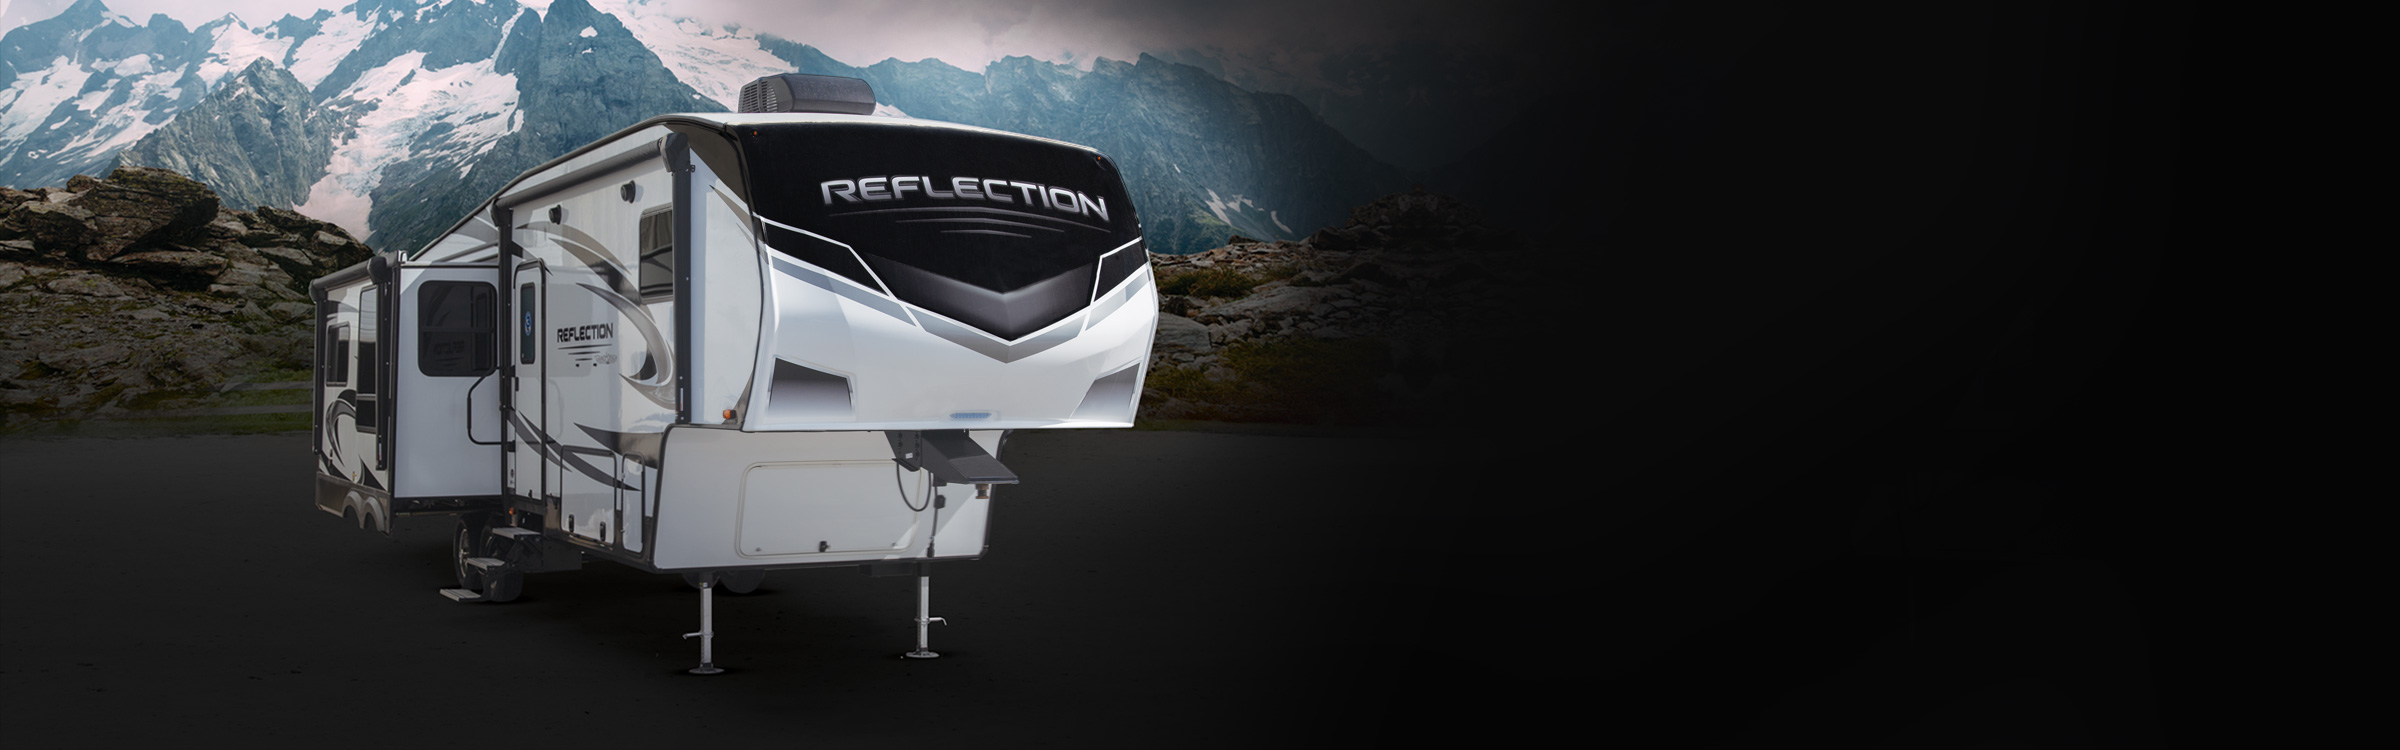 Reflection Fifth-Wheel Specs / Features   Grand Design